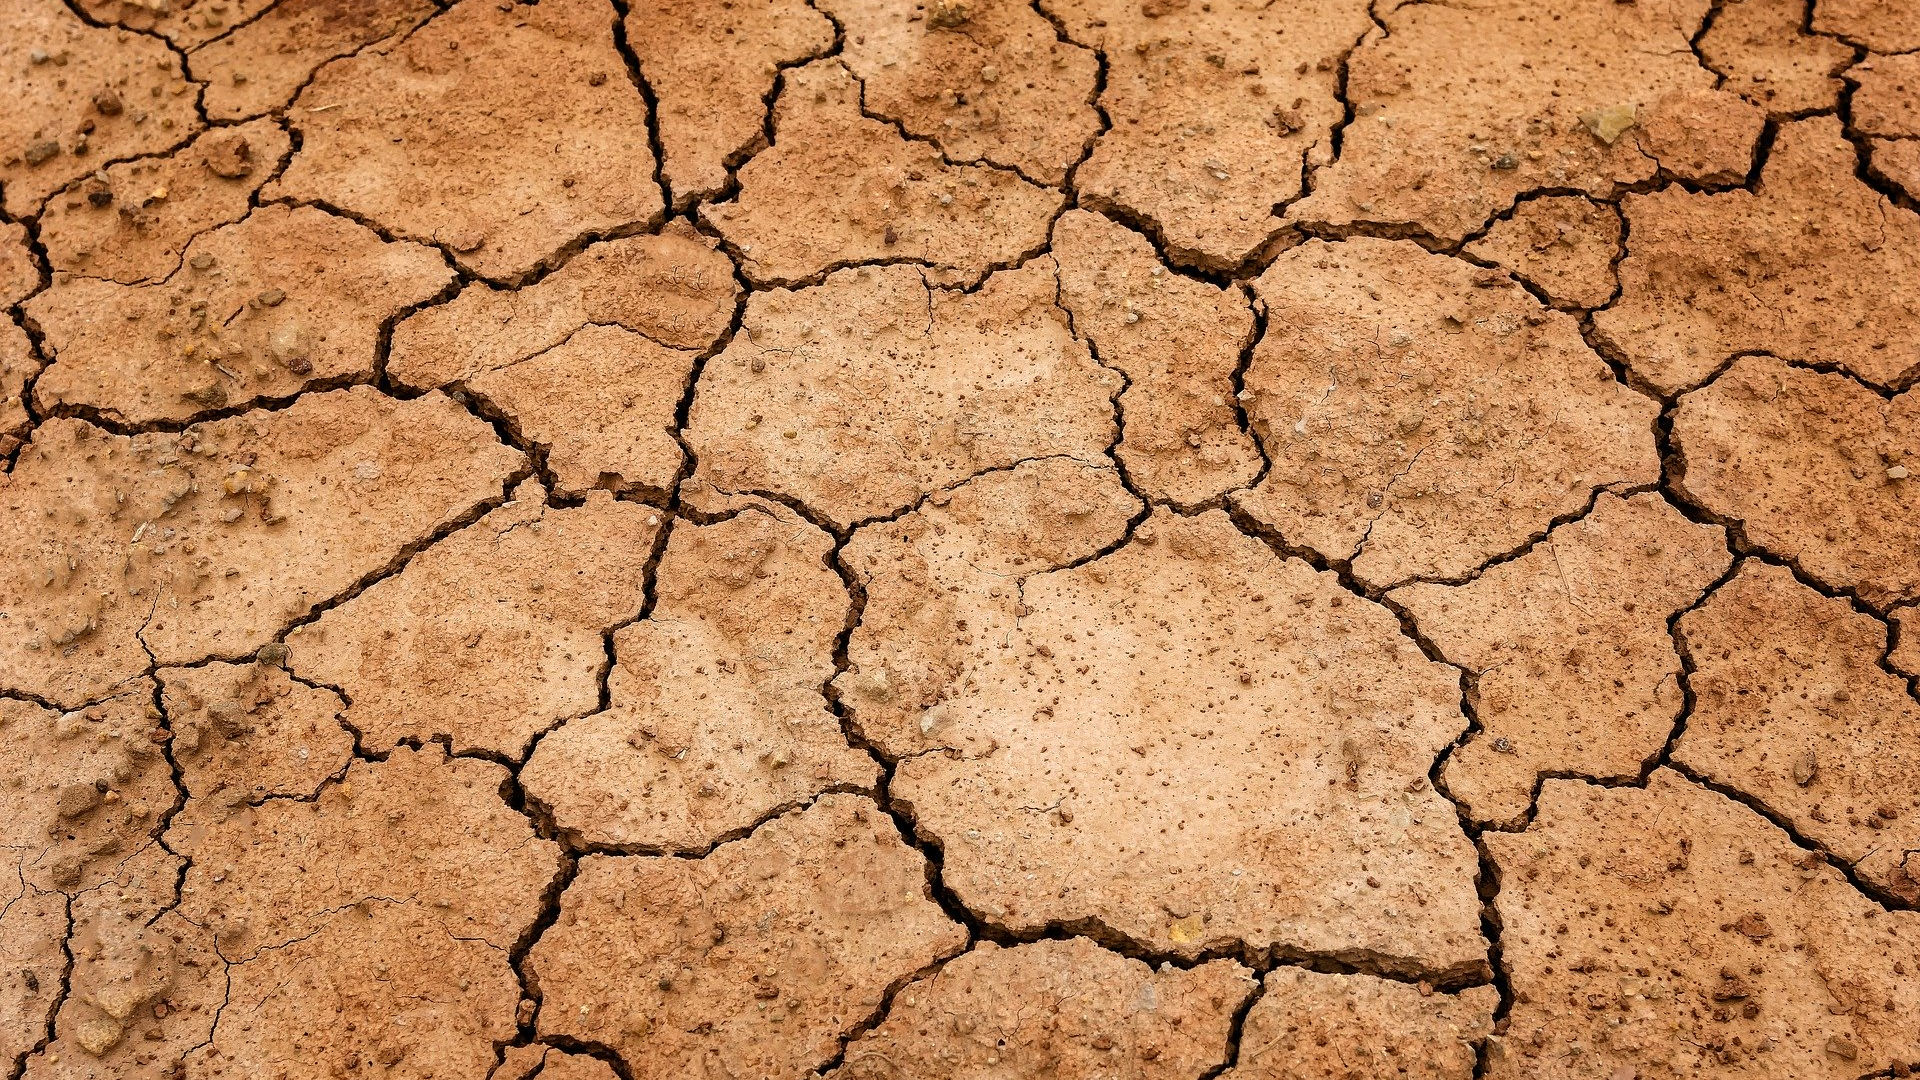 Drought. Photo credit: Peter H on Pixabay.